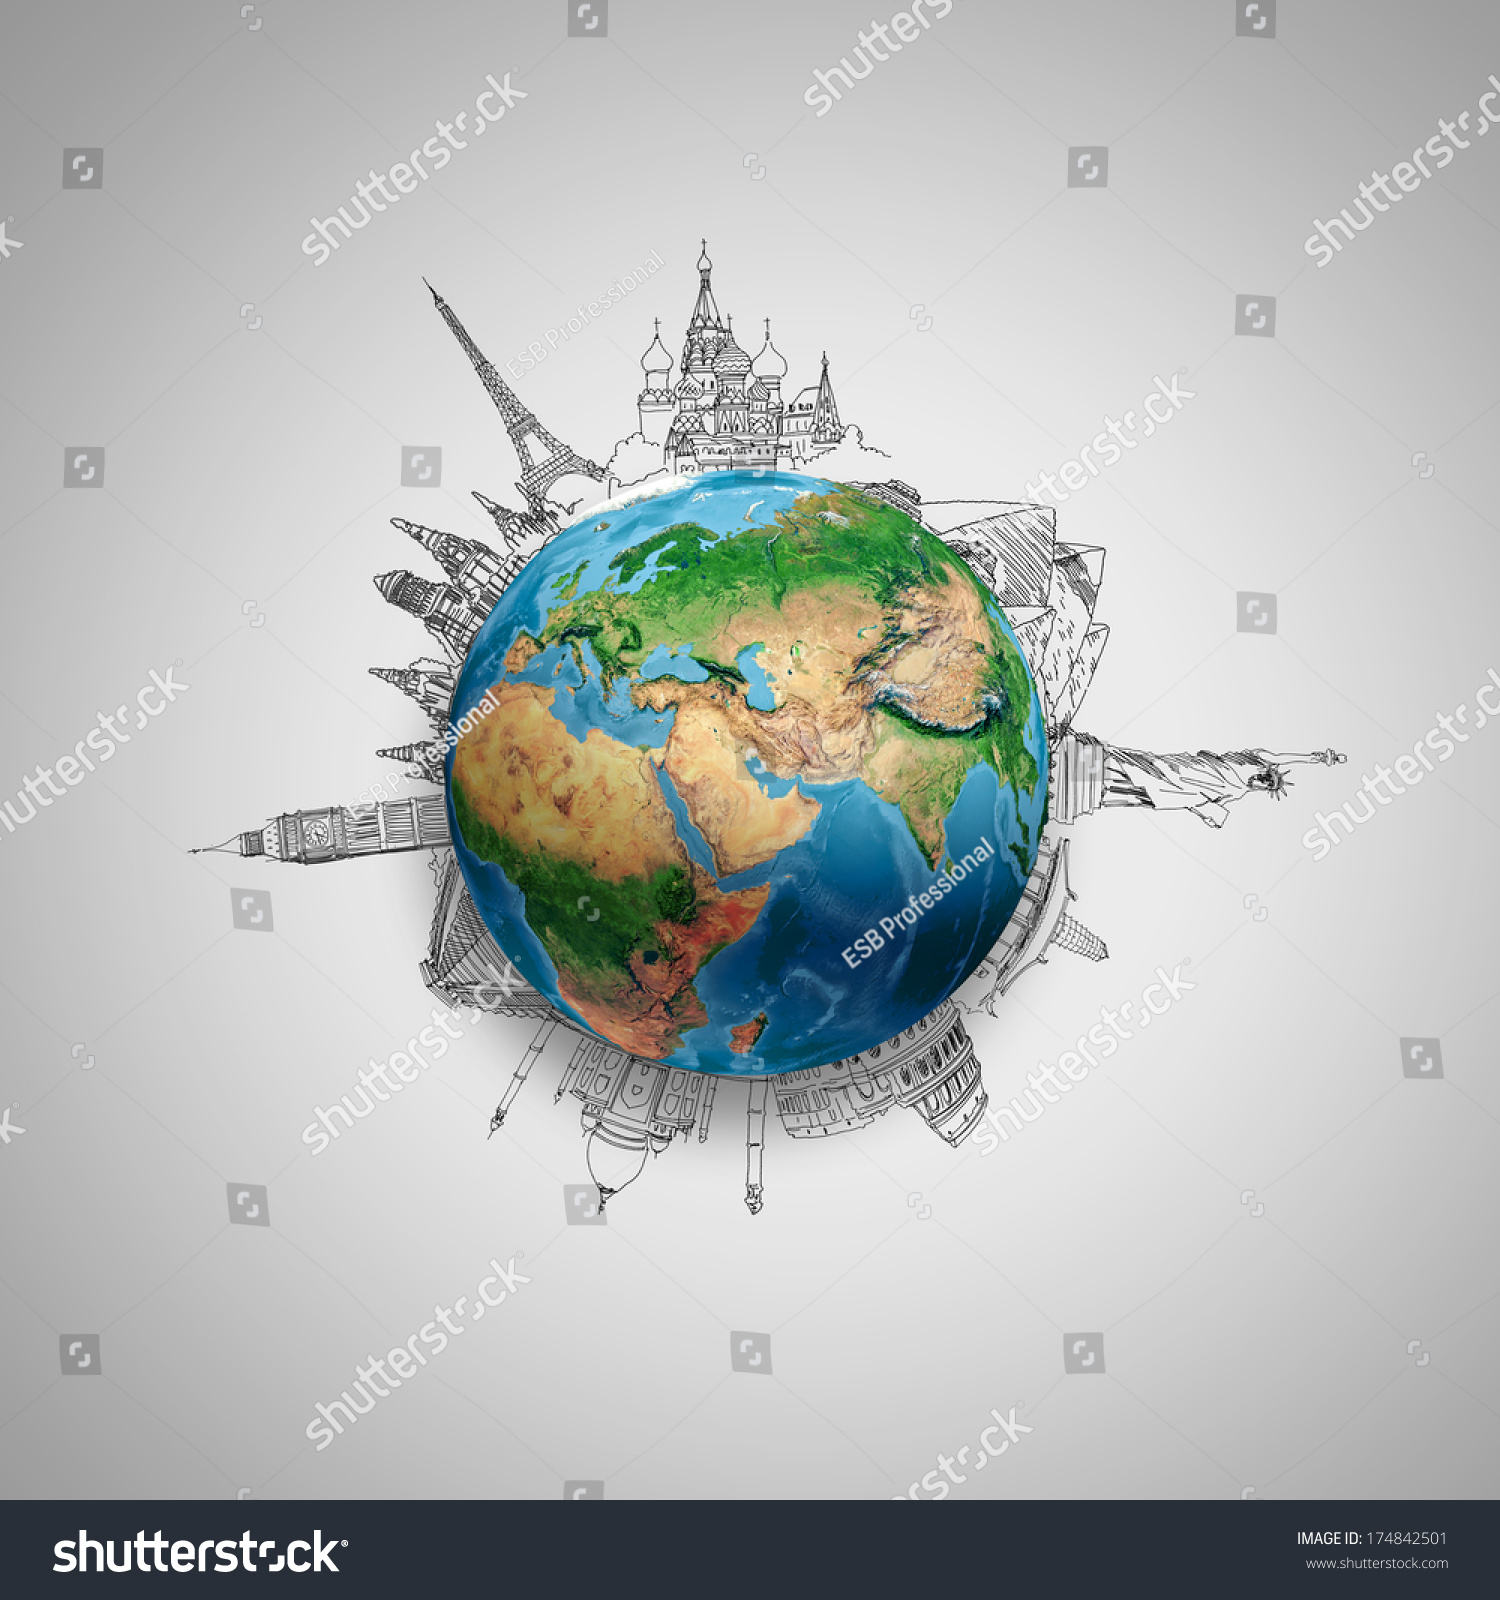 Earth Planet On Grey Background Pencil Stock Illustration ...